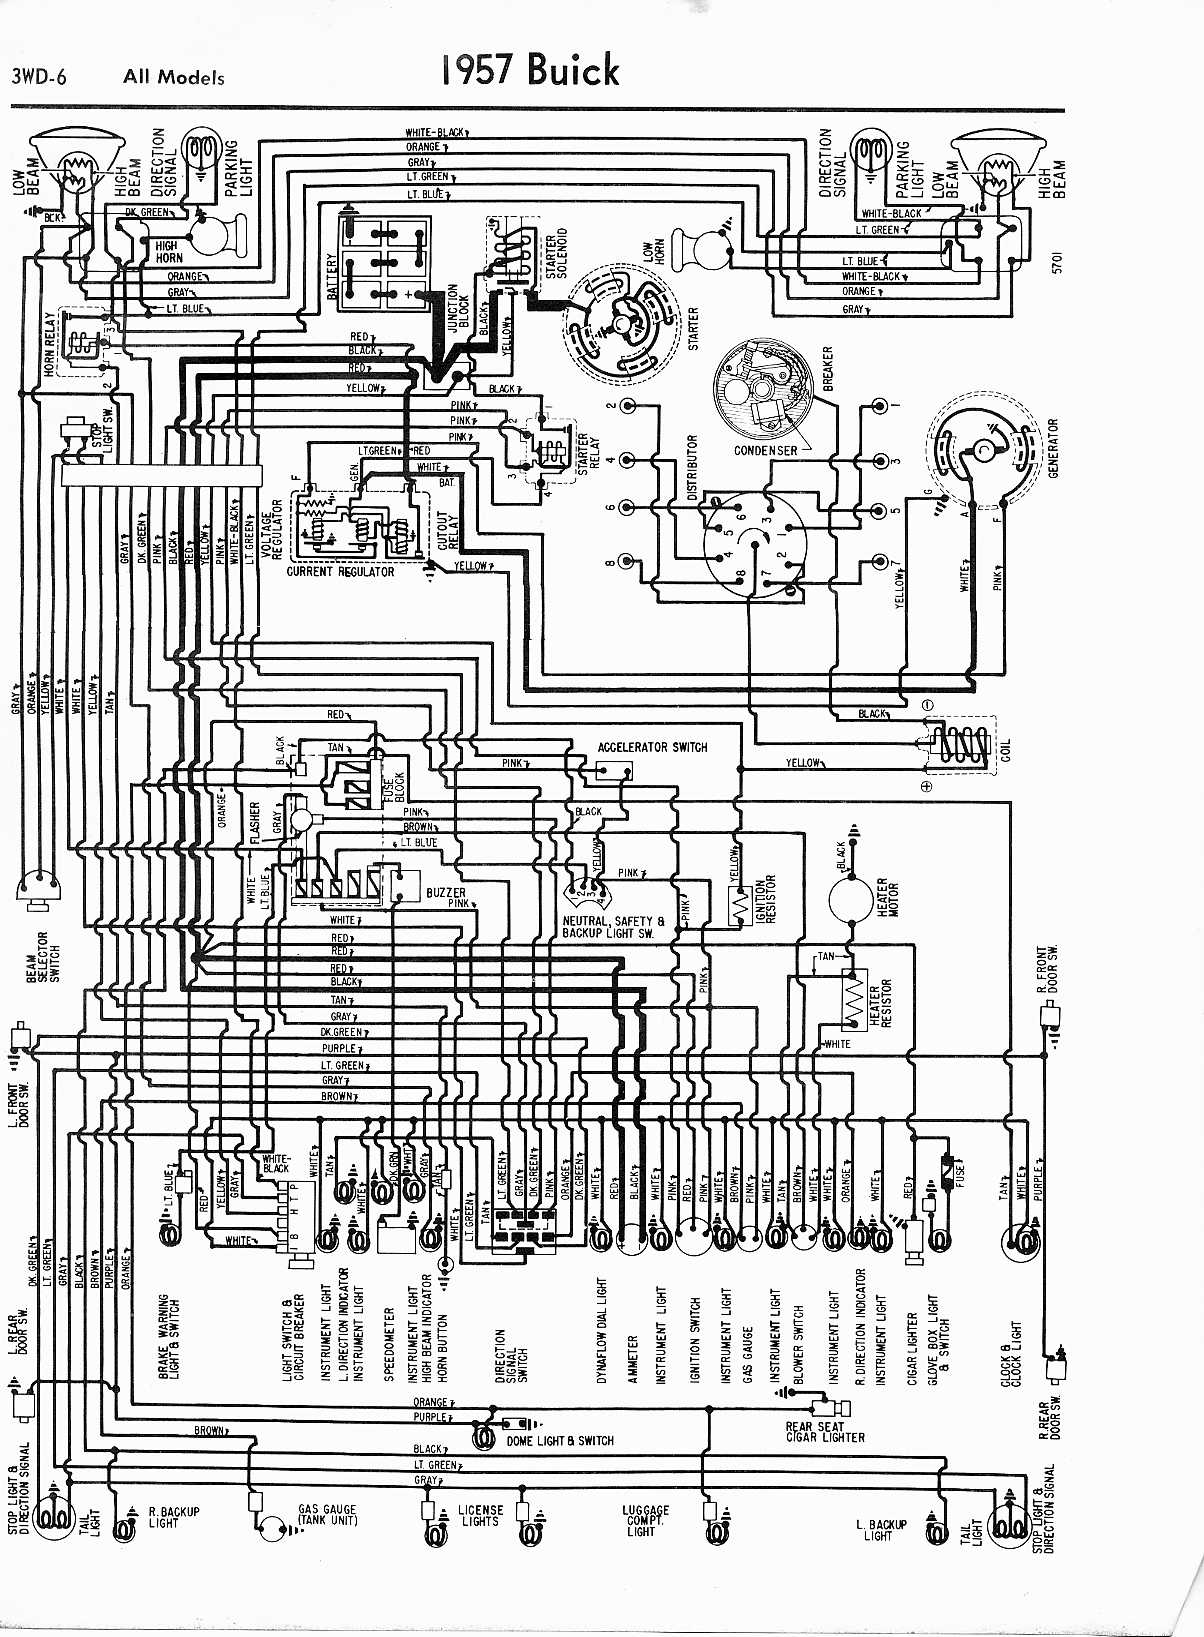 [DIAGRAM_4PO]  77F4D8 1966 Chrysler Newport Wiring Diagram | Wiring Library | 1966 Chrysler 300 Electric Window Wiring Diagram |  | Wiring Library